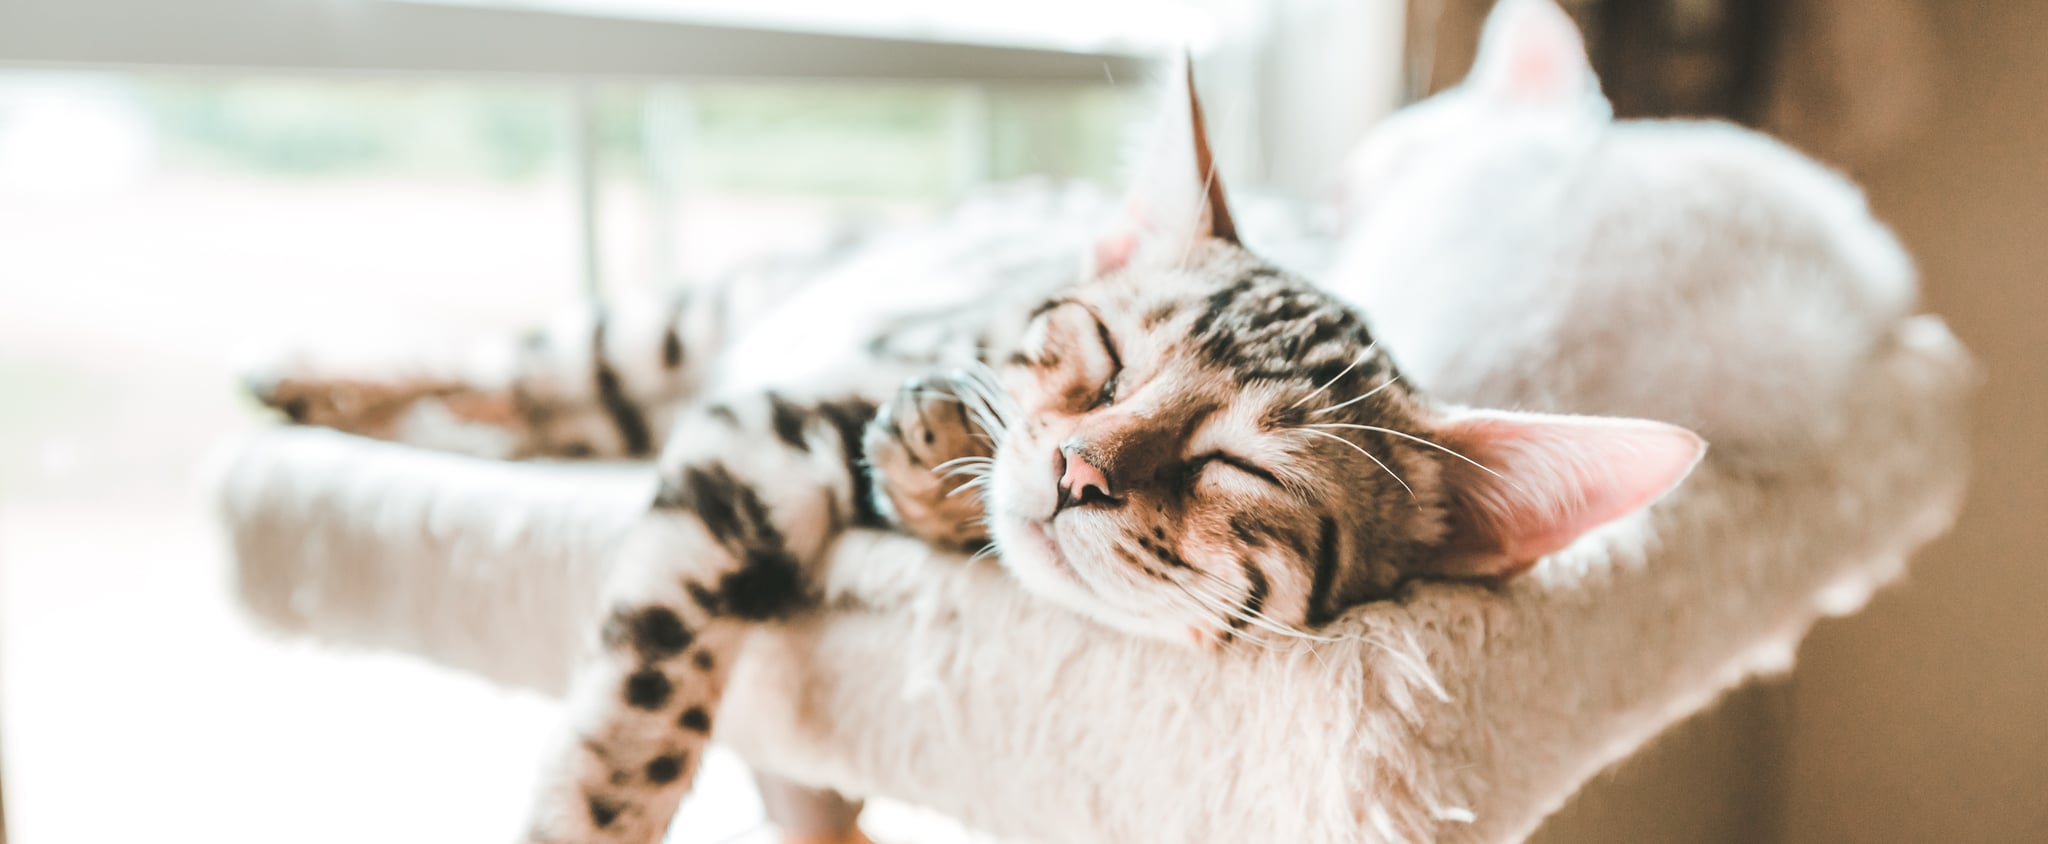 Why Does My Cat Purr in Their Sleep?